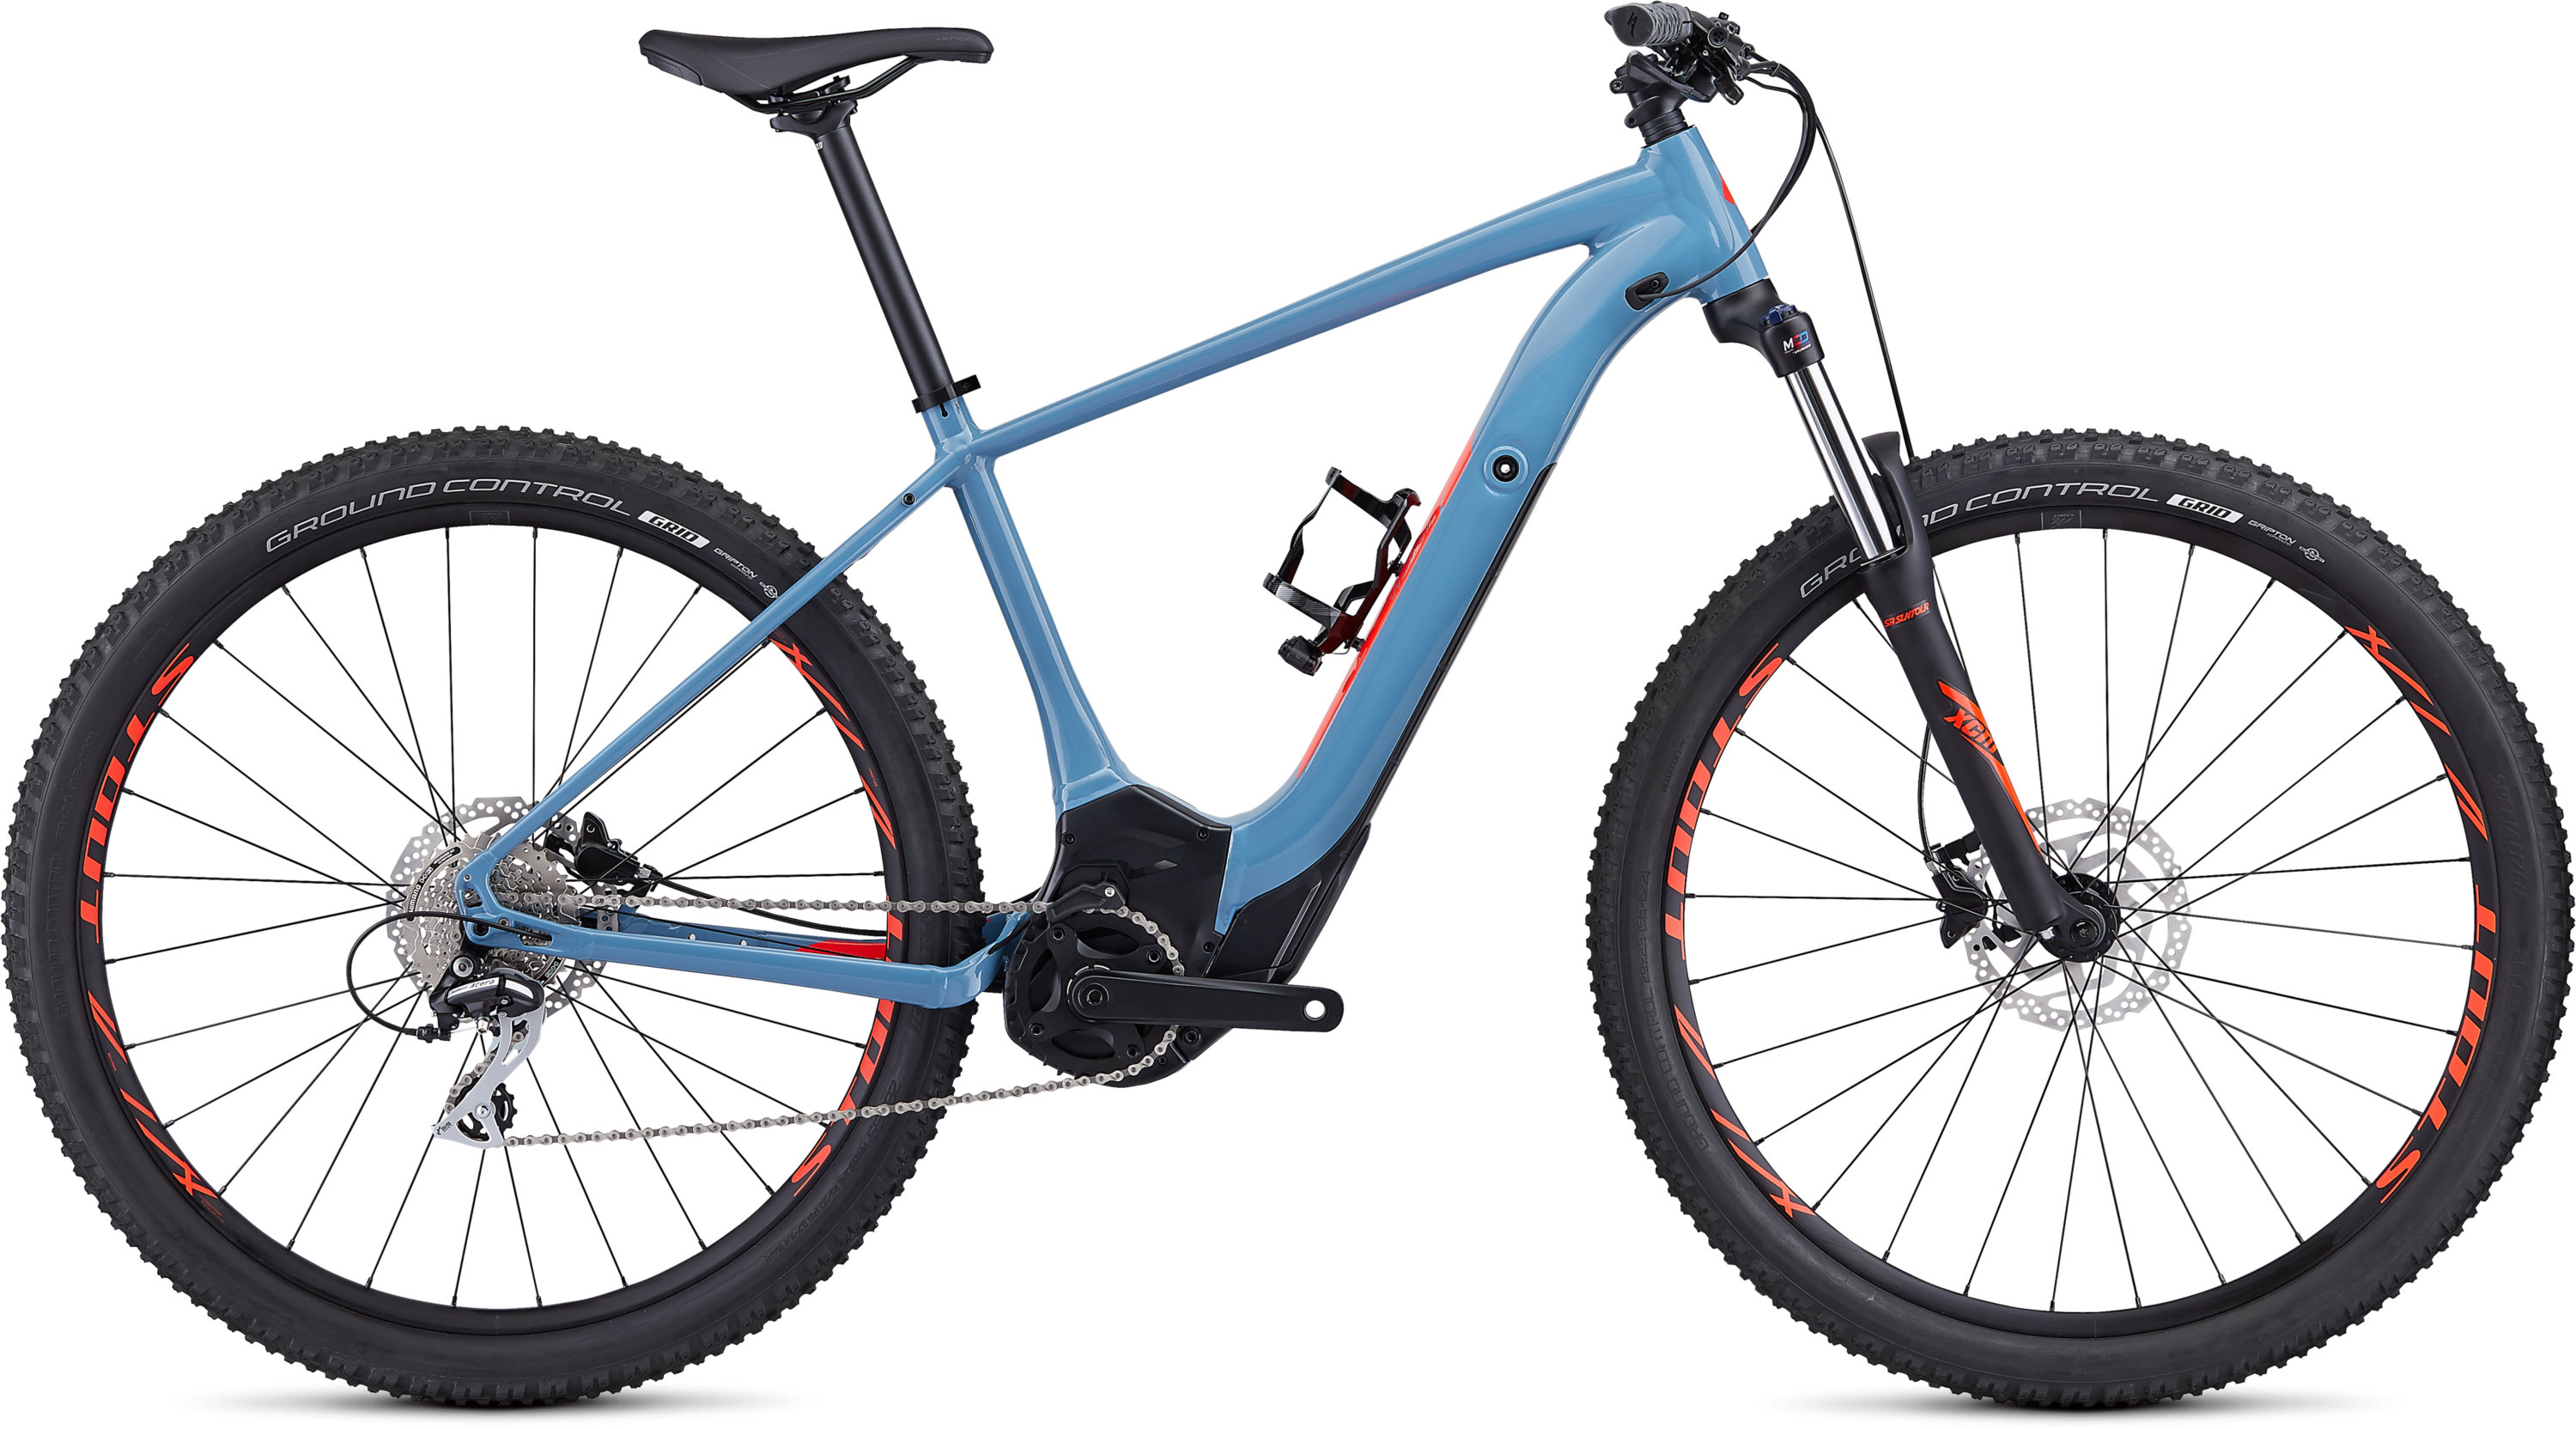 2019 Specialized Men S Turbo Levo Hardtail 29